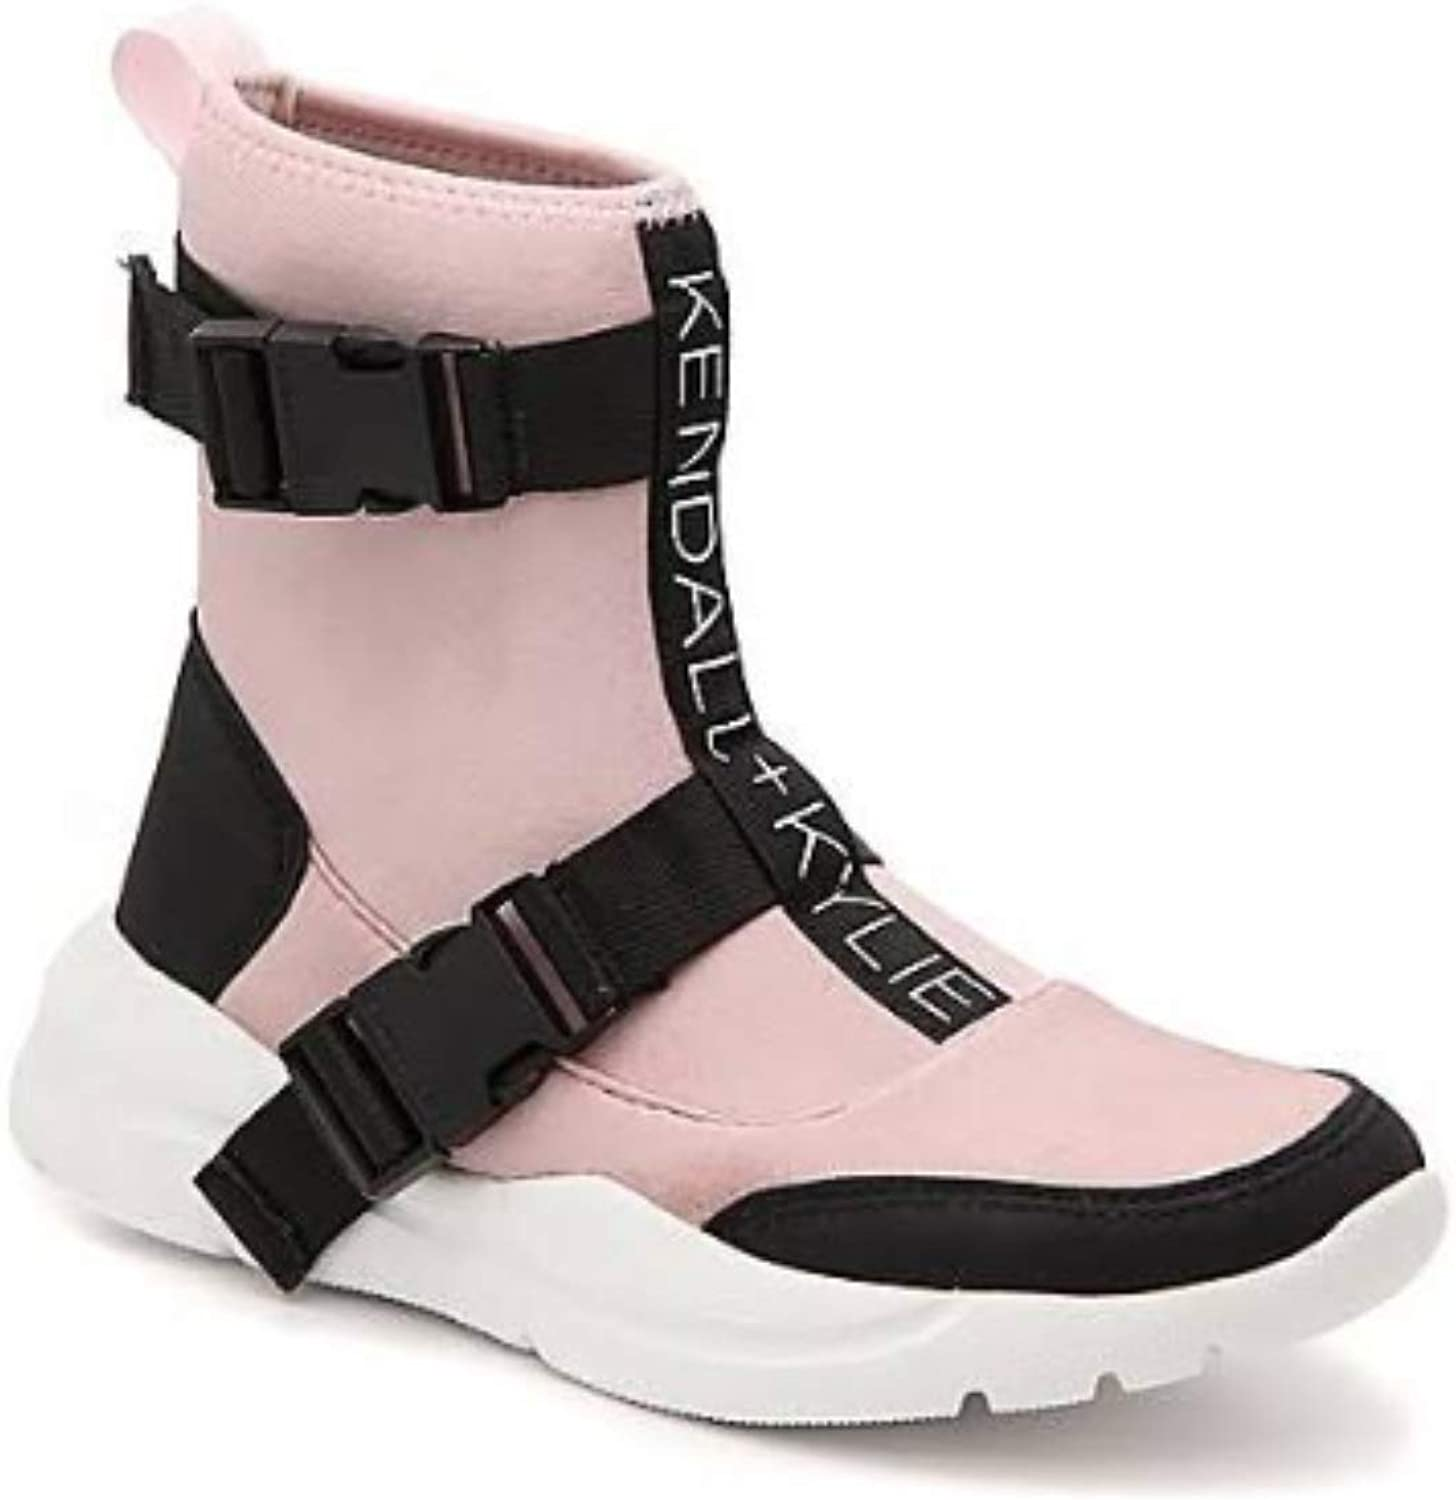 KENDALL + KYLIE Women's Nemo High Top Sneakers, Color Options